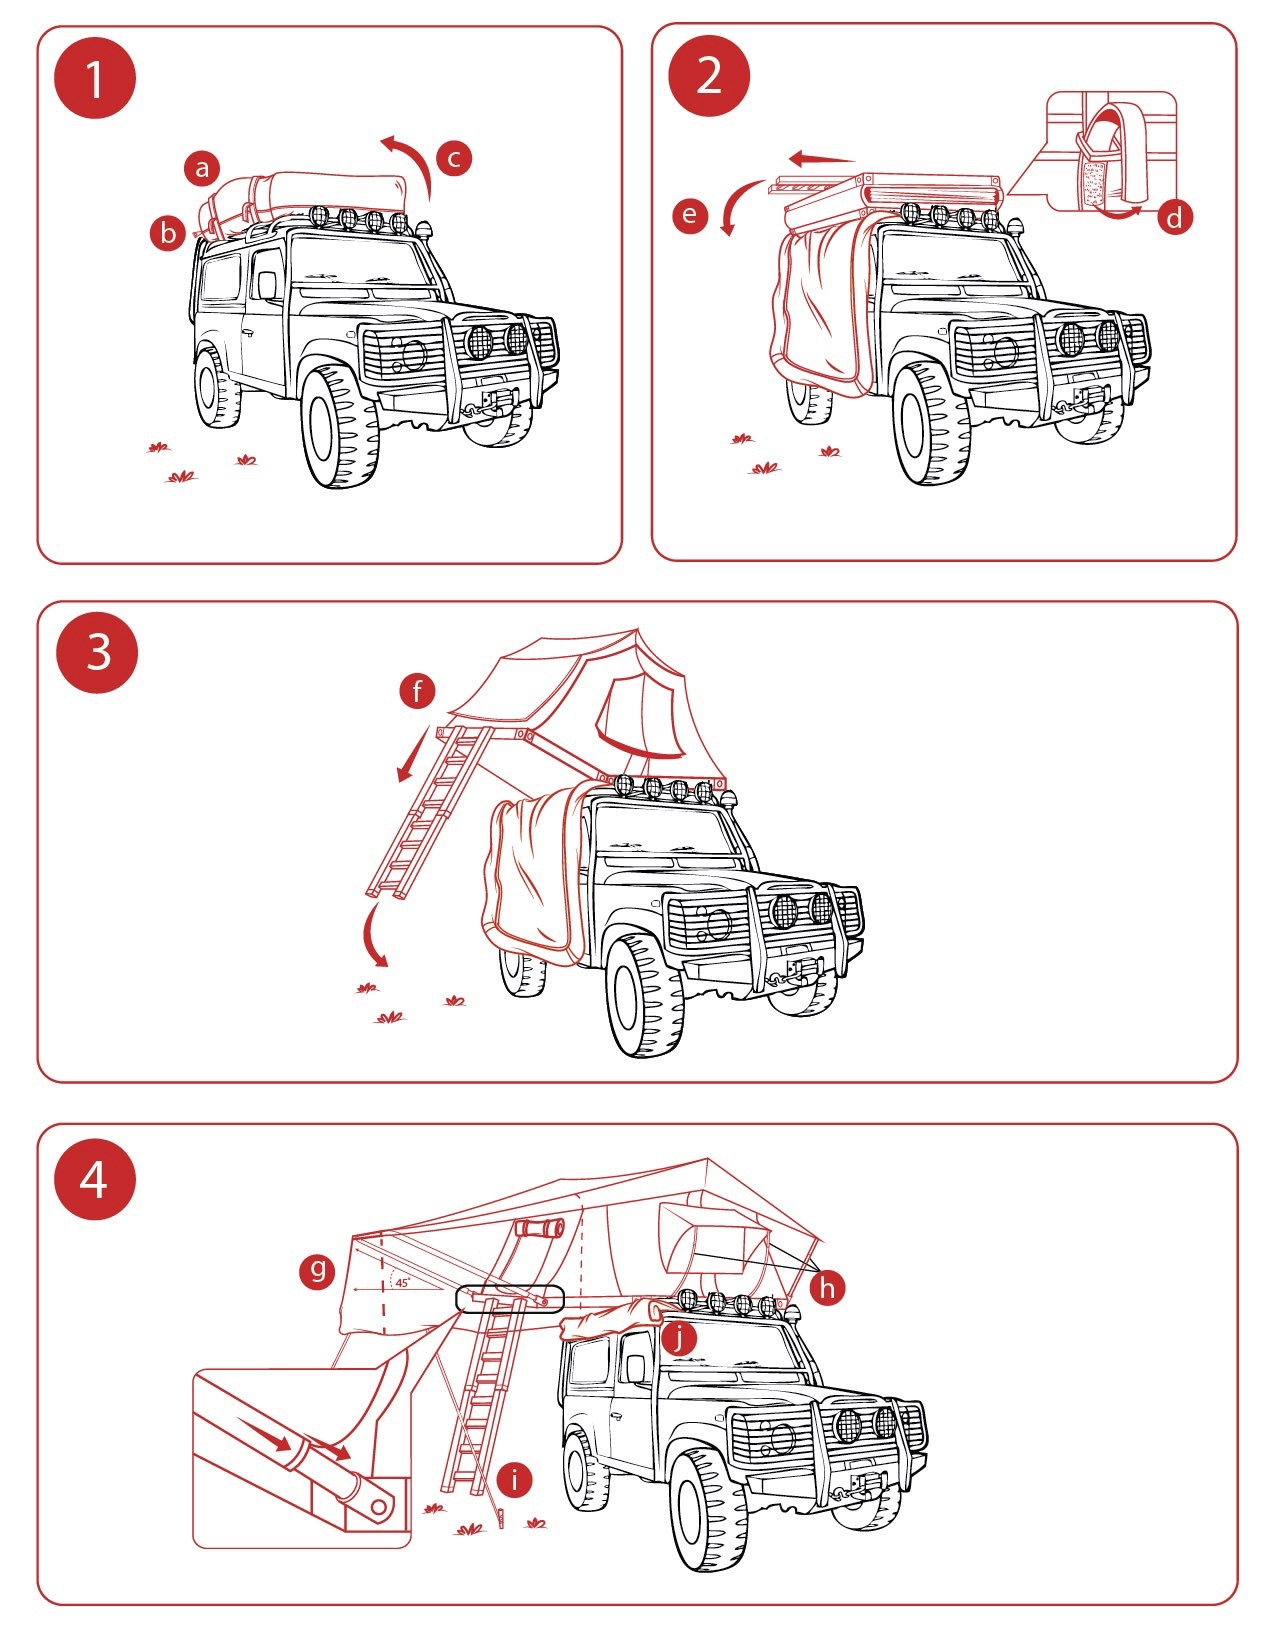 How to open rooftop tent